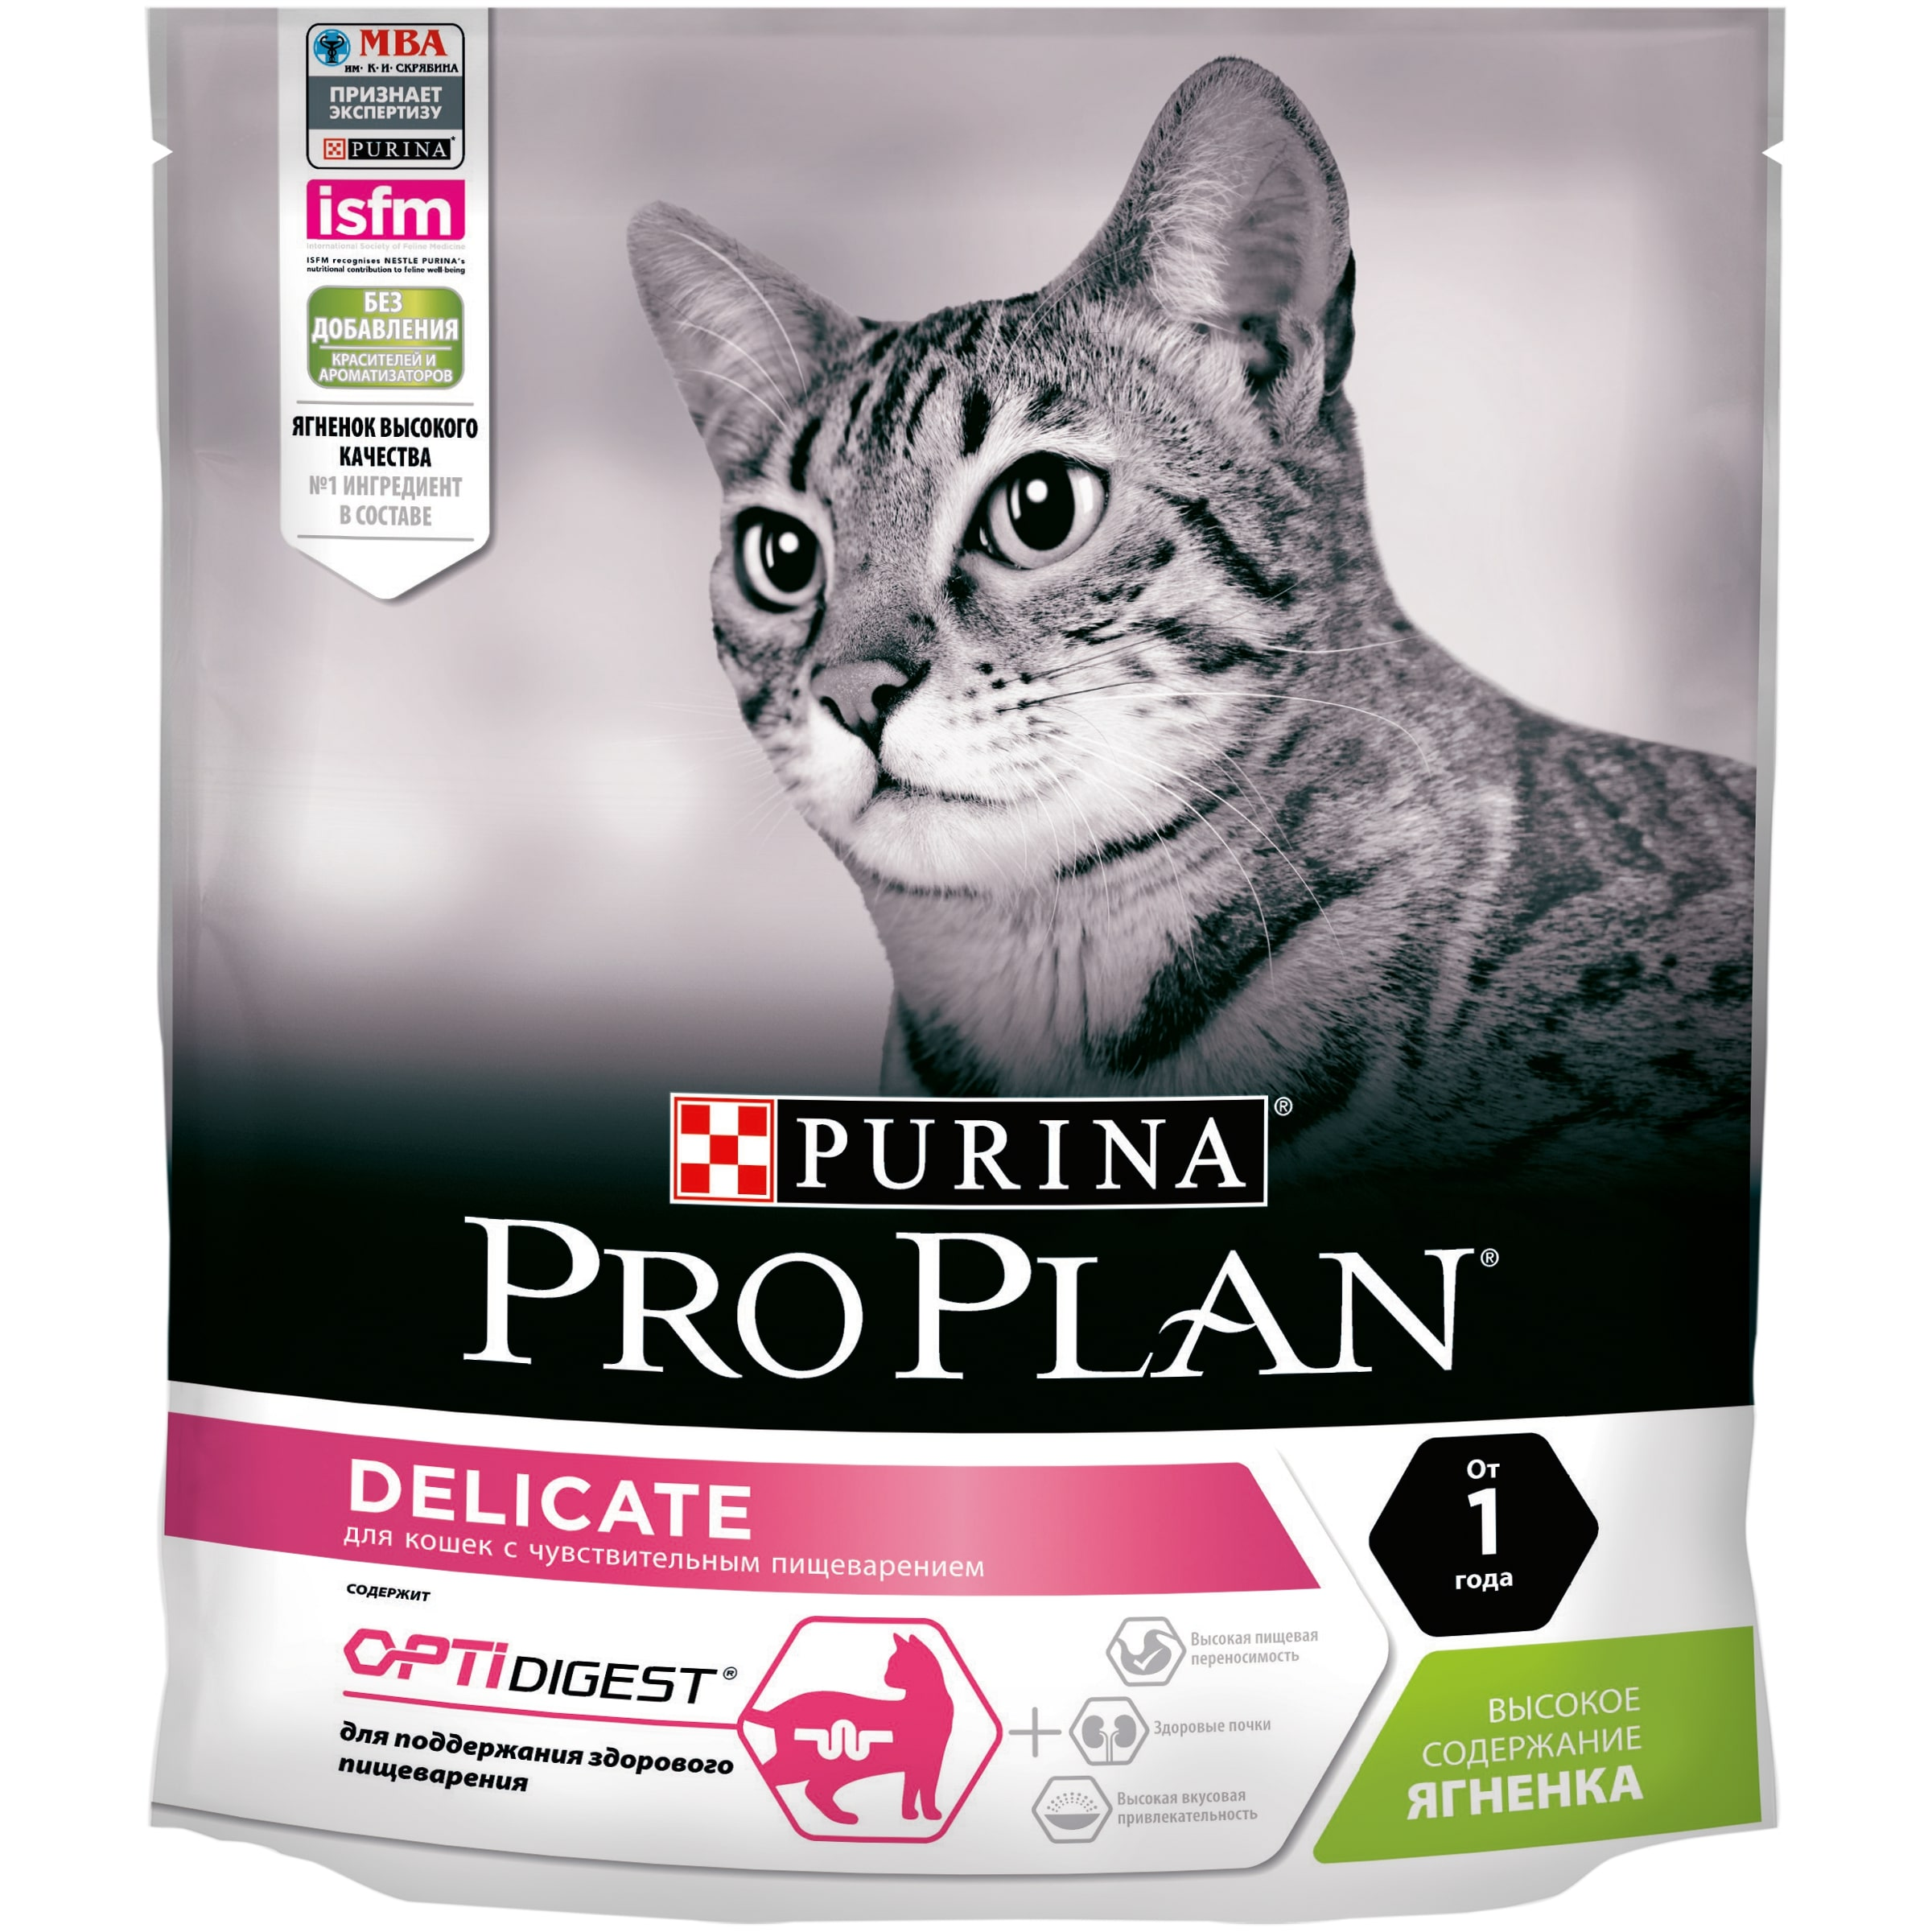 Pro Plan dry food for cats with sensitive digestion and choosy for food, with lamb, Package, 400 g цена